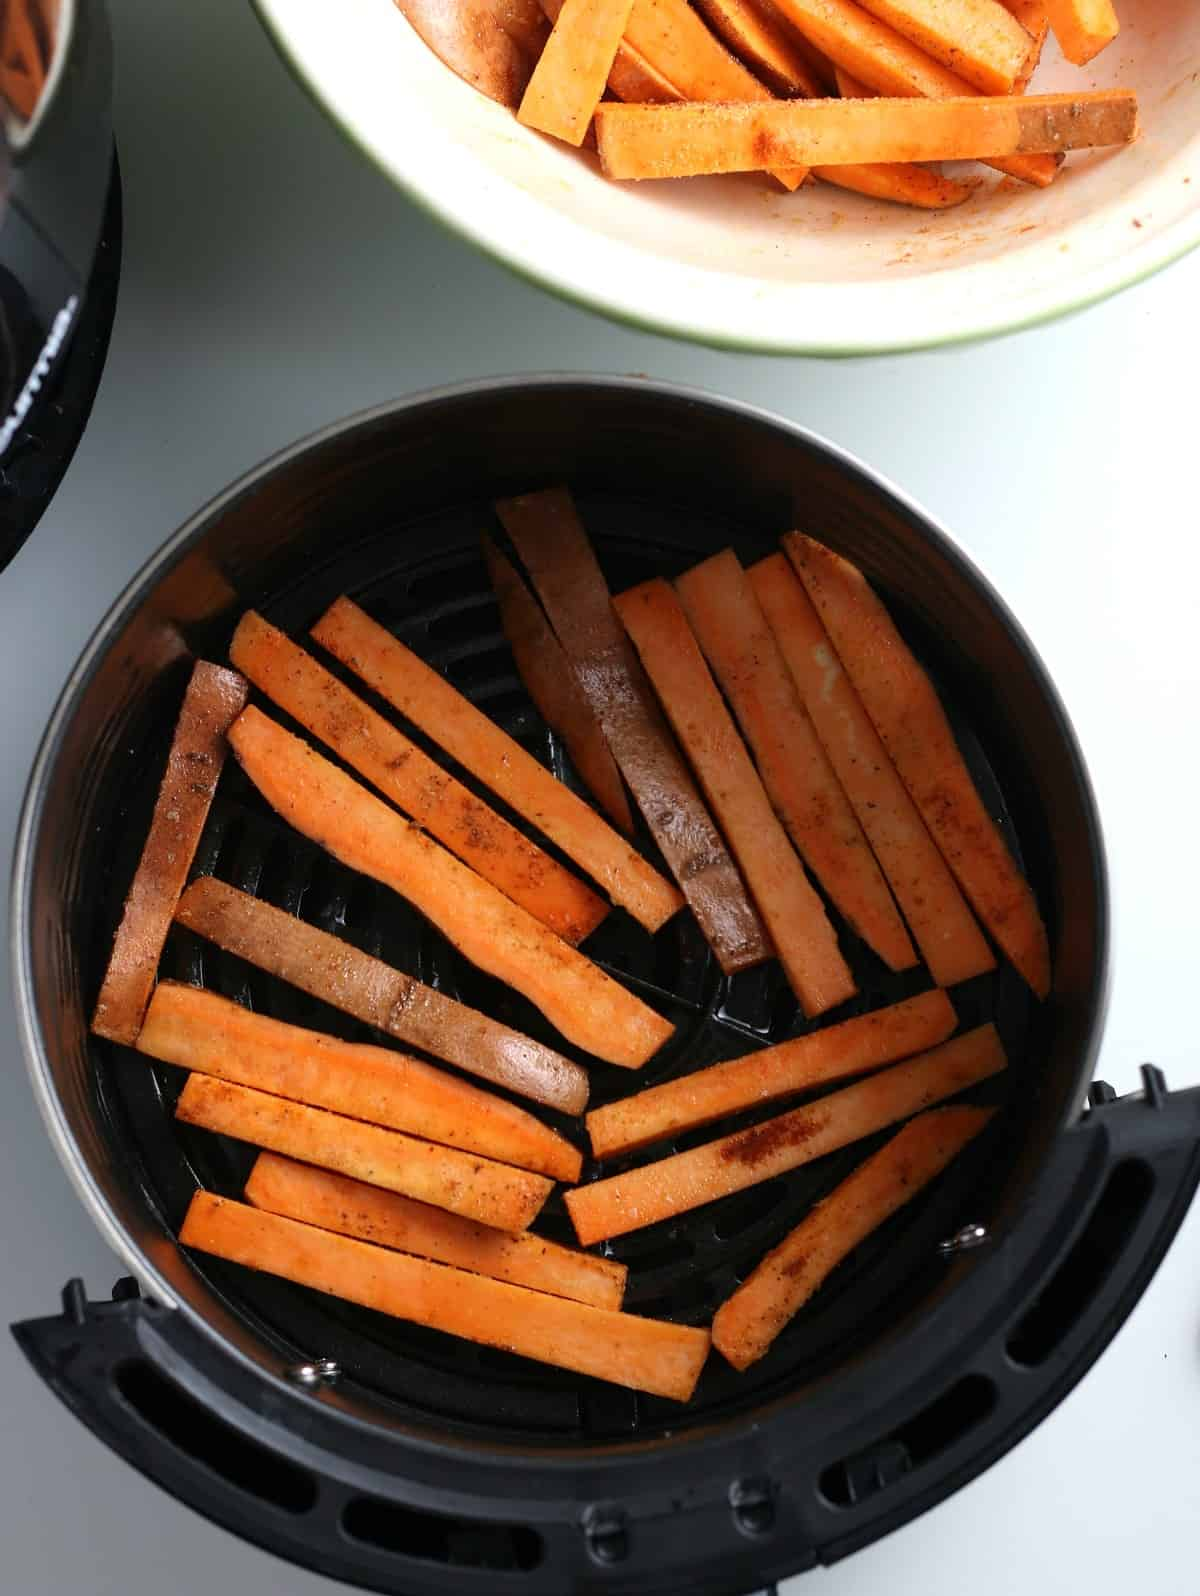 Raw sweet potato matchsticks laying in the bottom of an air fryer.